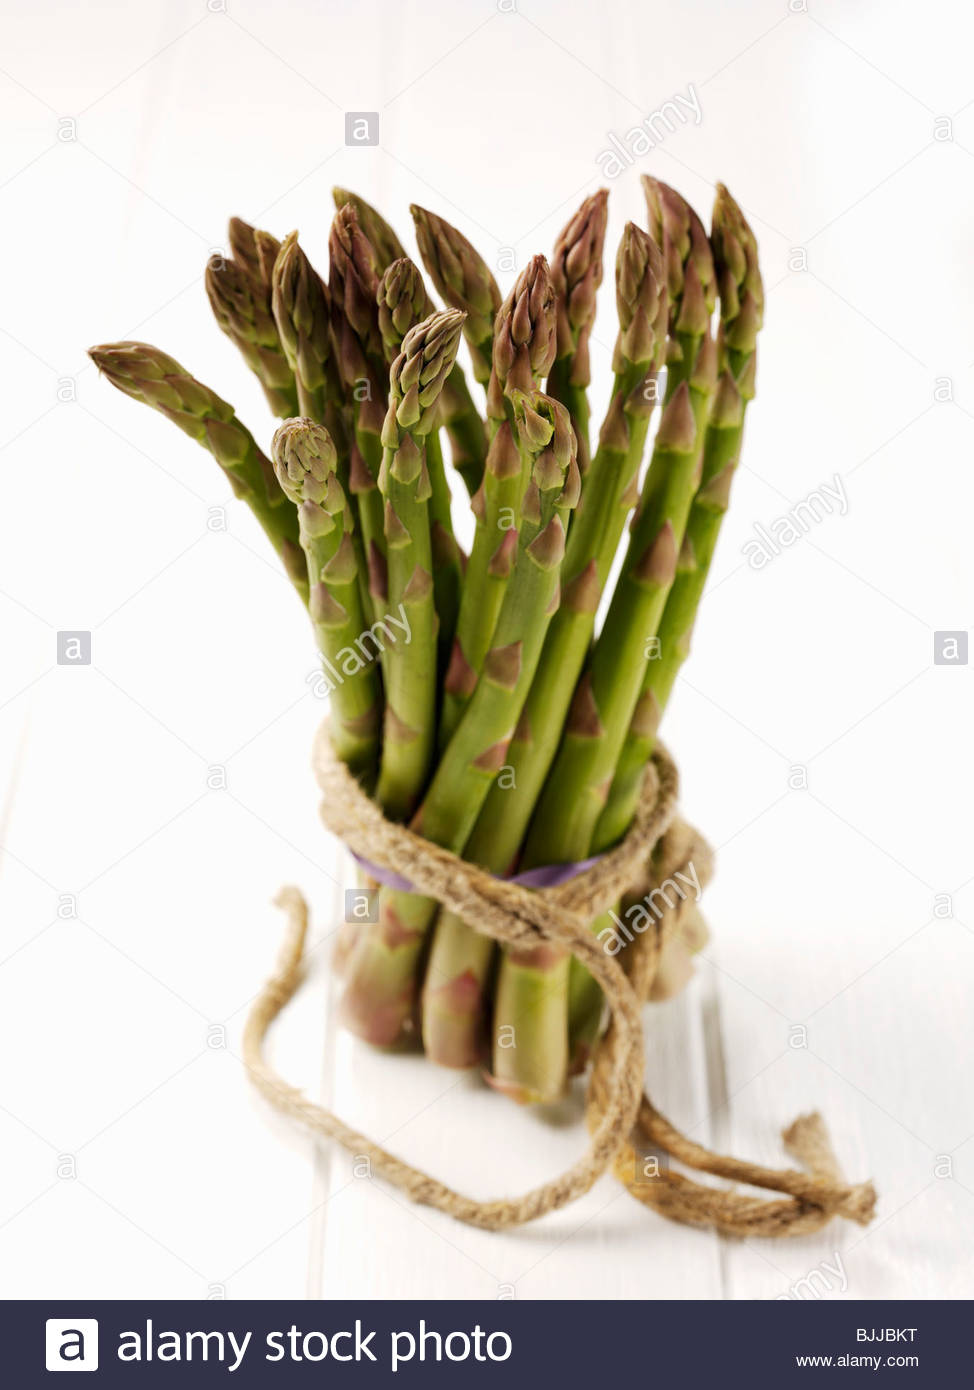 A bundle of green asparagus tied with string - Stock Image